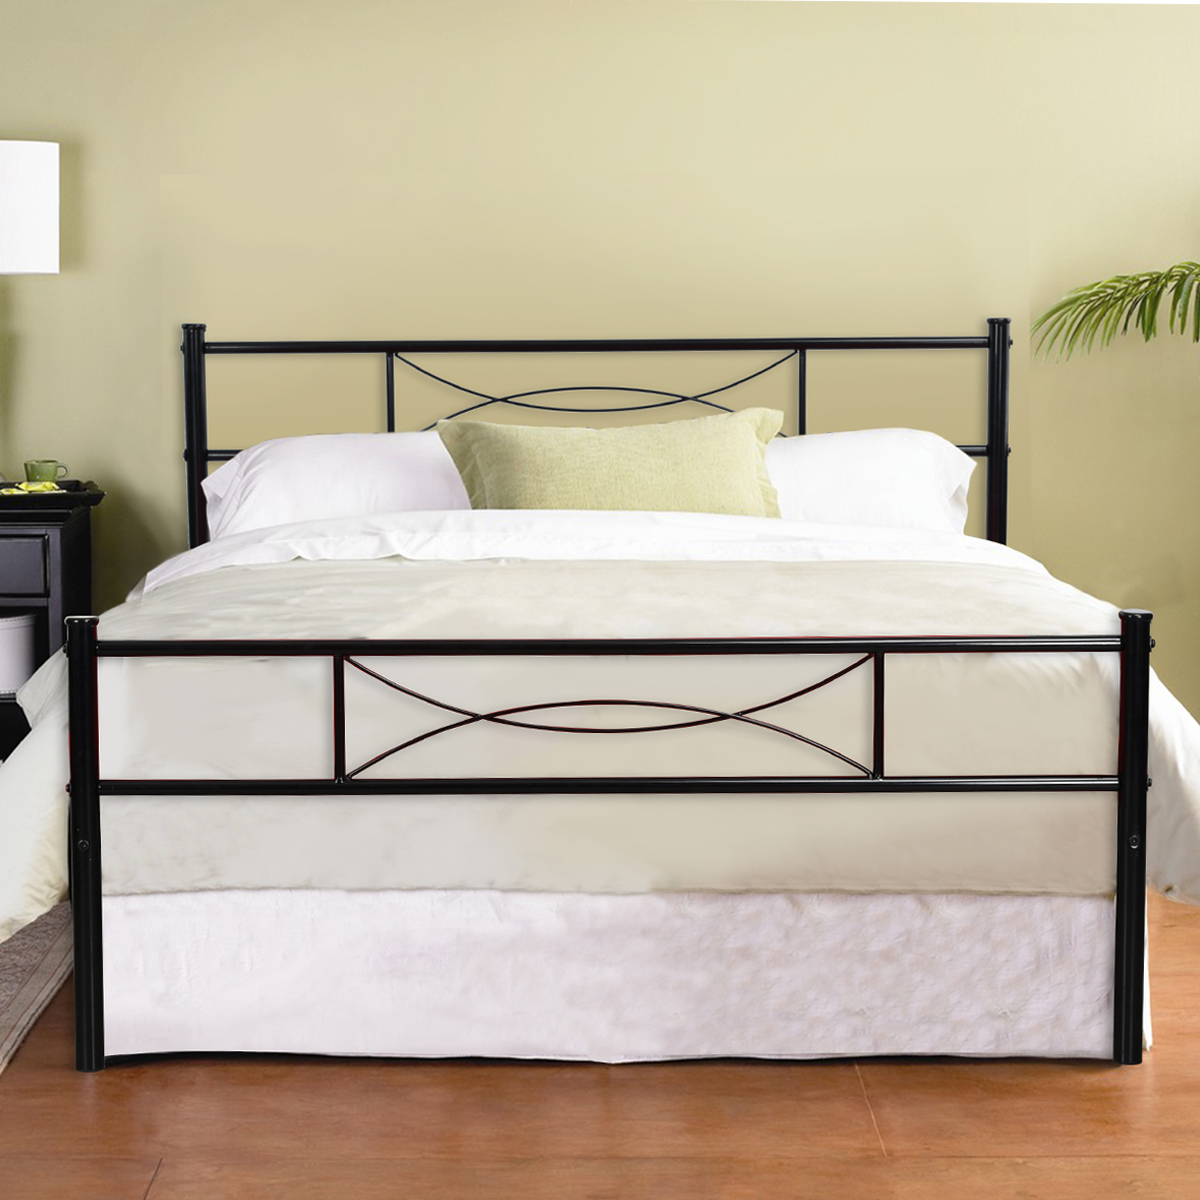 Metal Bed Frames platform metal bed frame foundation headboard furniture bedroom